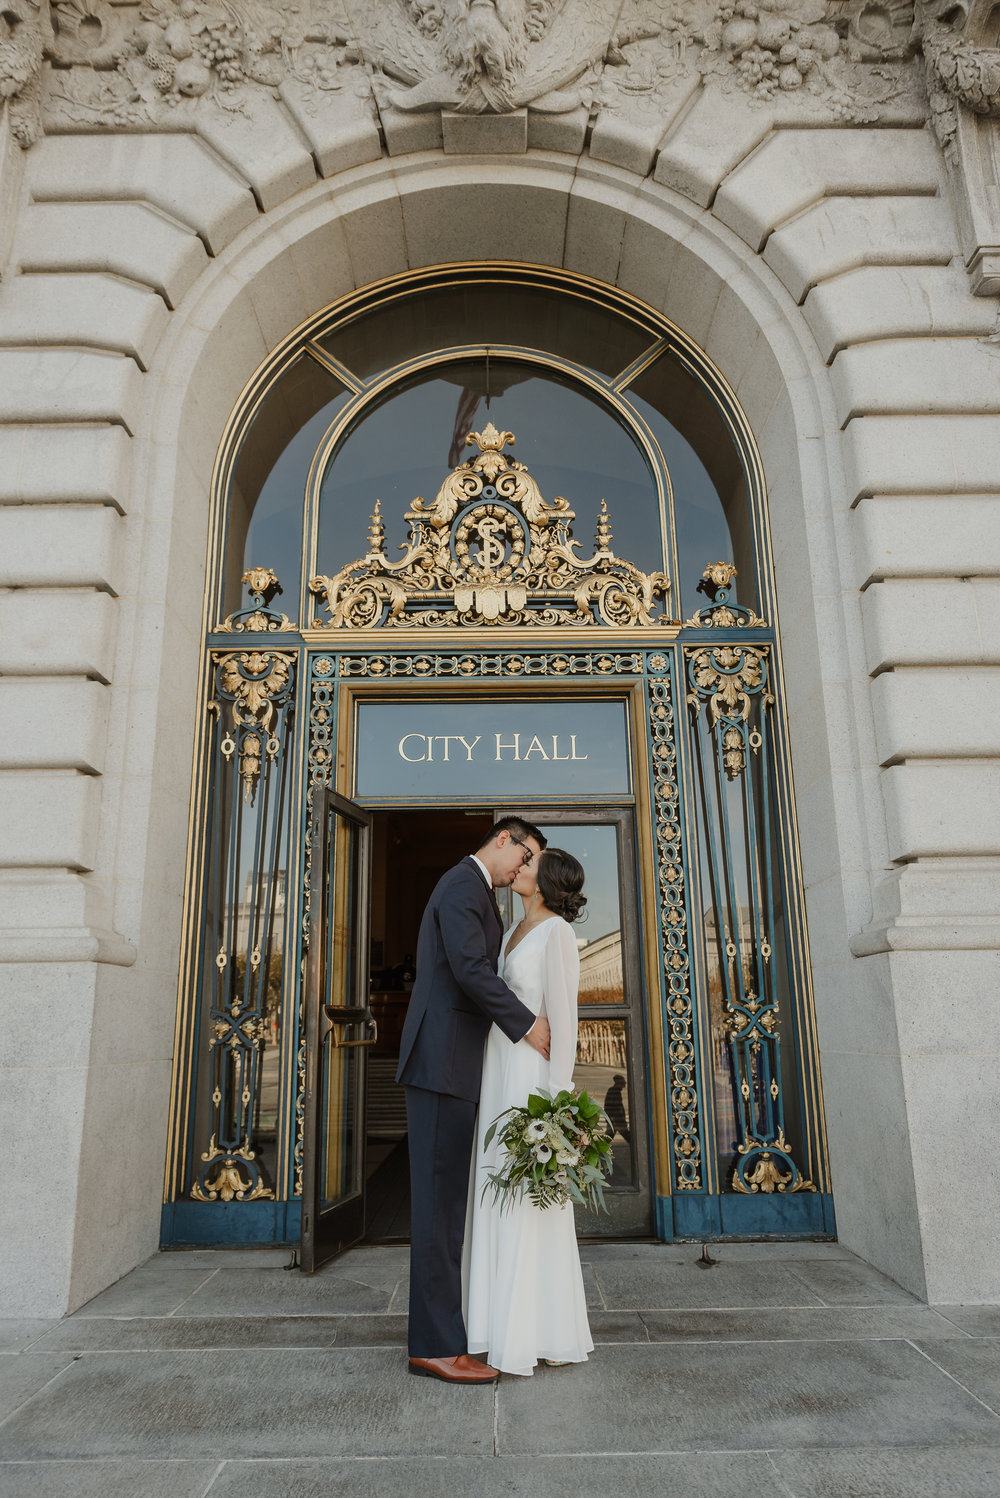 33-winter-san-francisco-city-hall-elopement-vivianchen-274.jpg